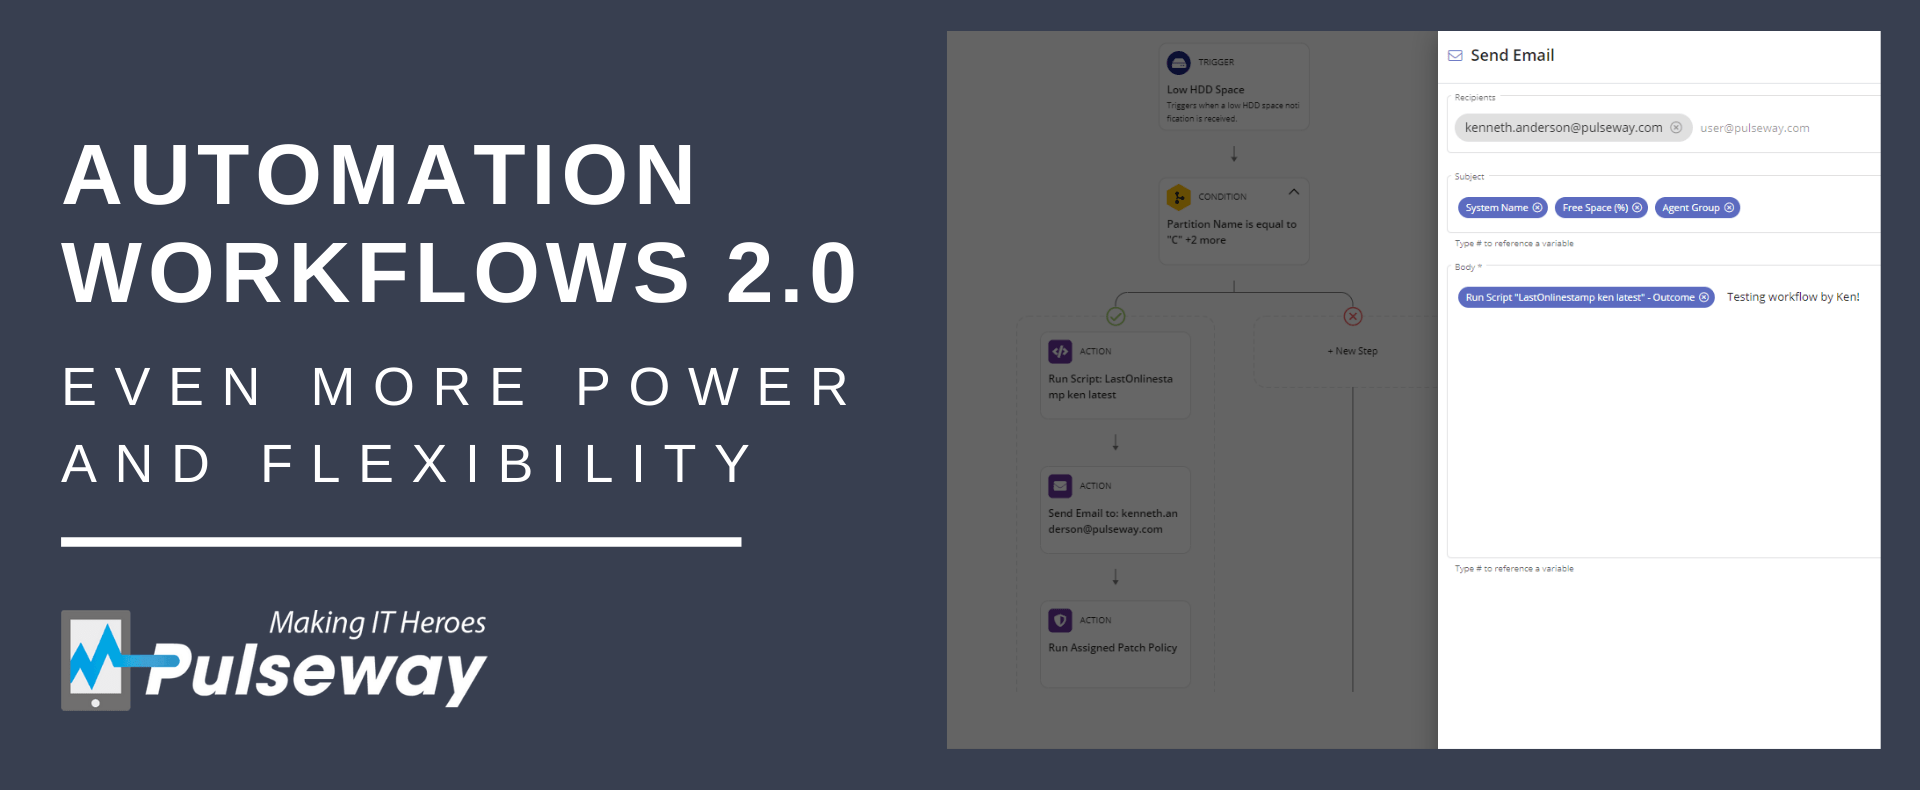 Pulseway Launches Automation Workflows 2.0 for even More Seamless User Experience